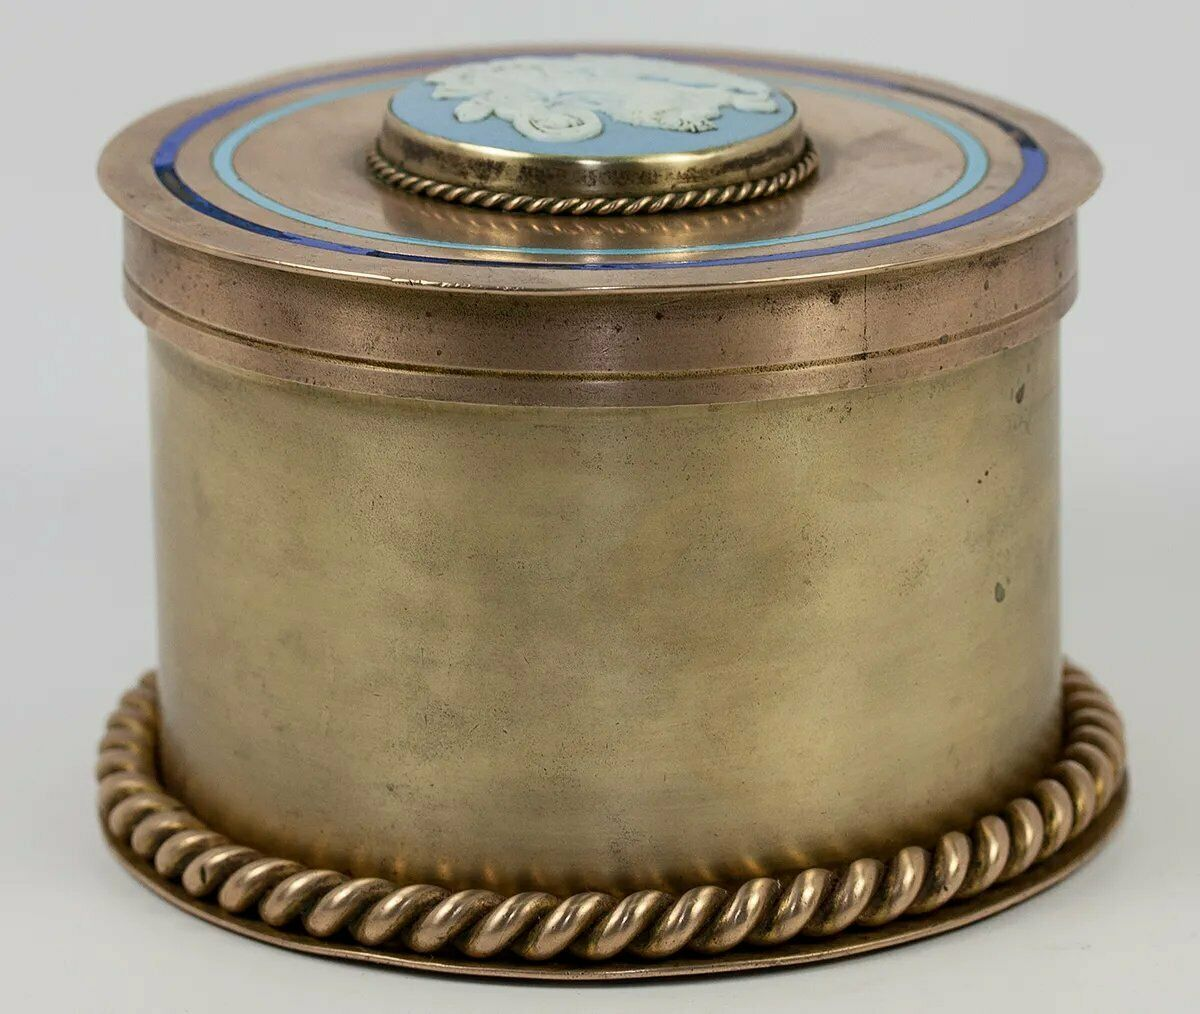 Antique Victorian Era Bronze Tea Caddy or Humidor, Enamel & Jasperware Plaque